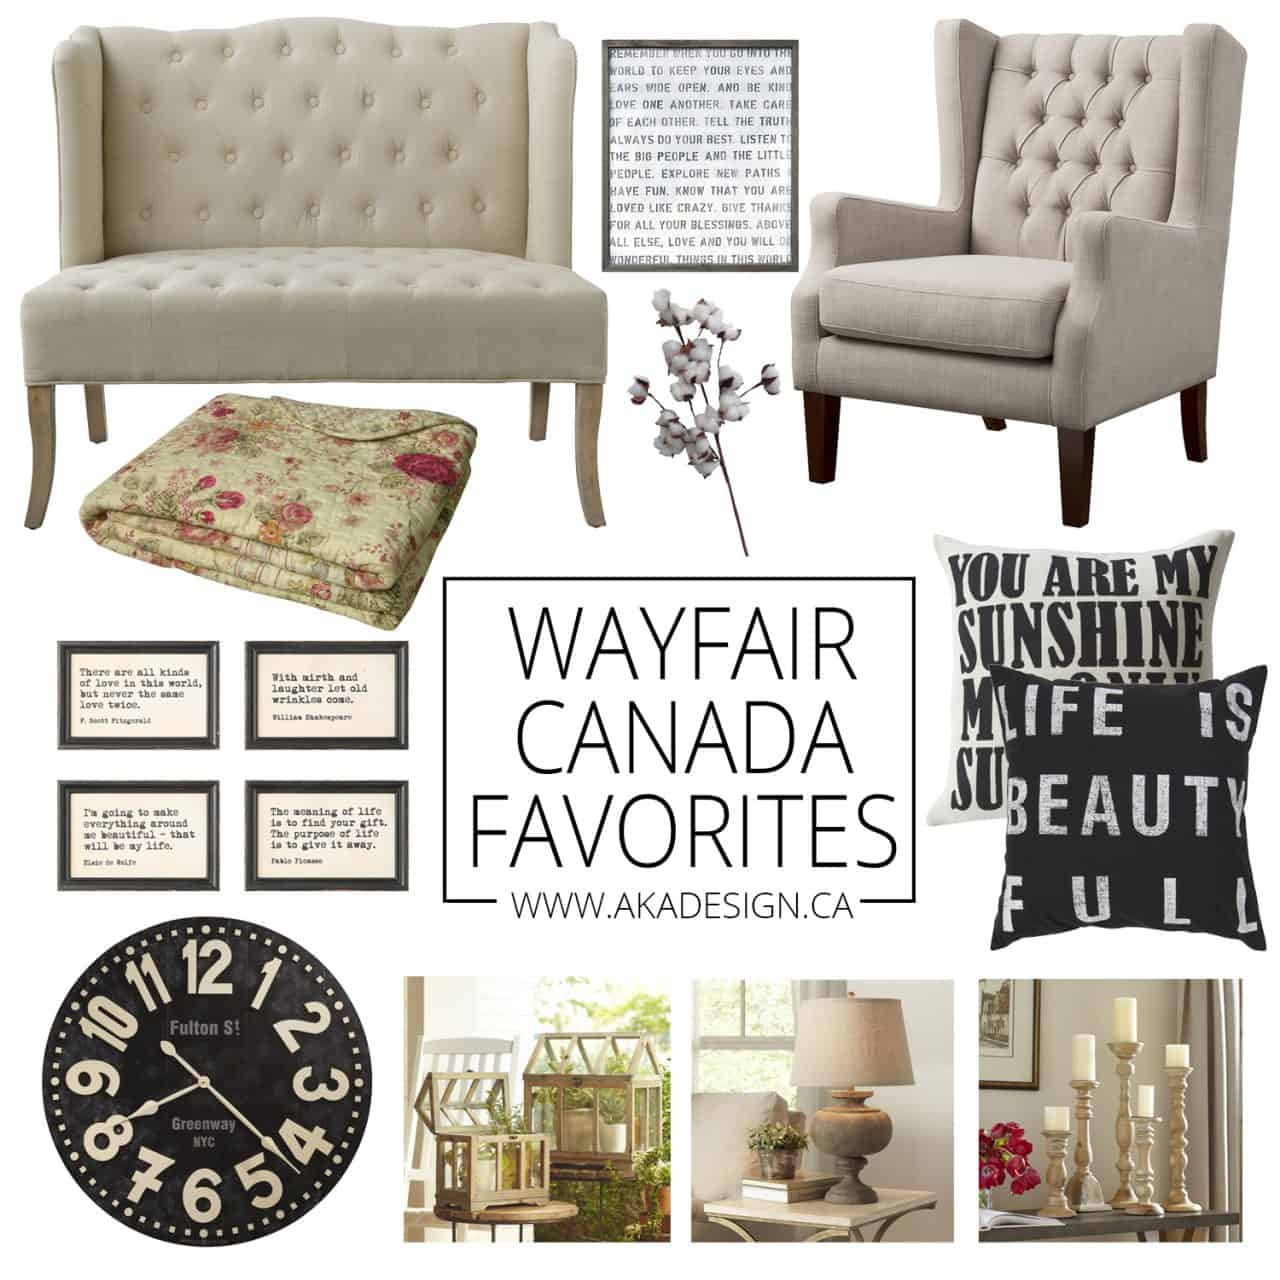 Wayfair Canada Favorites